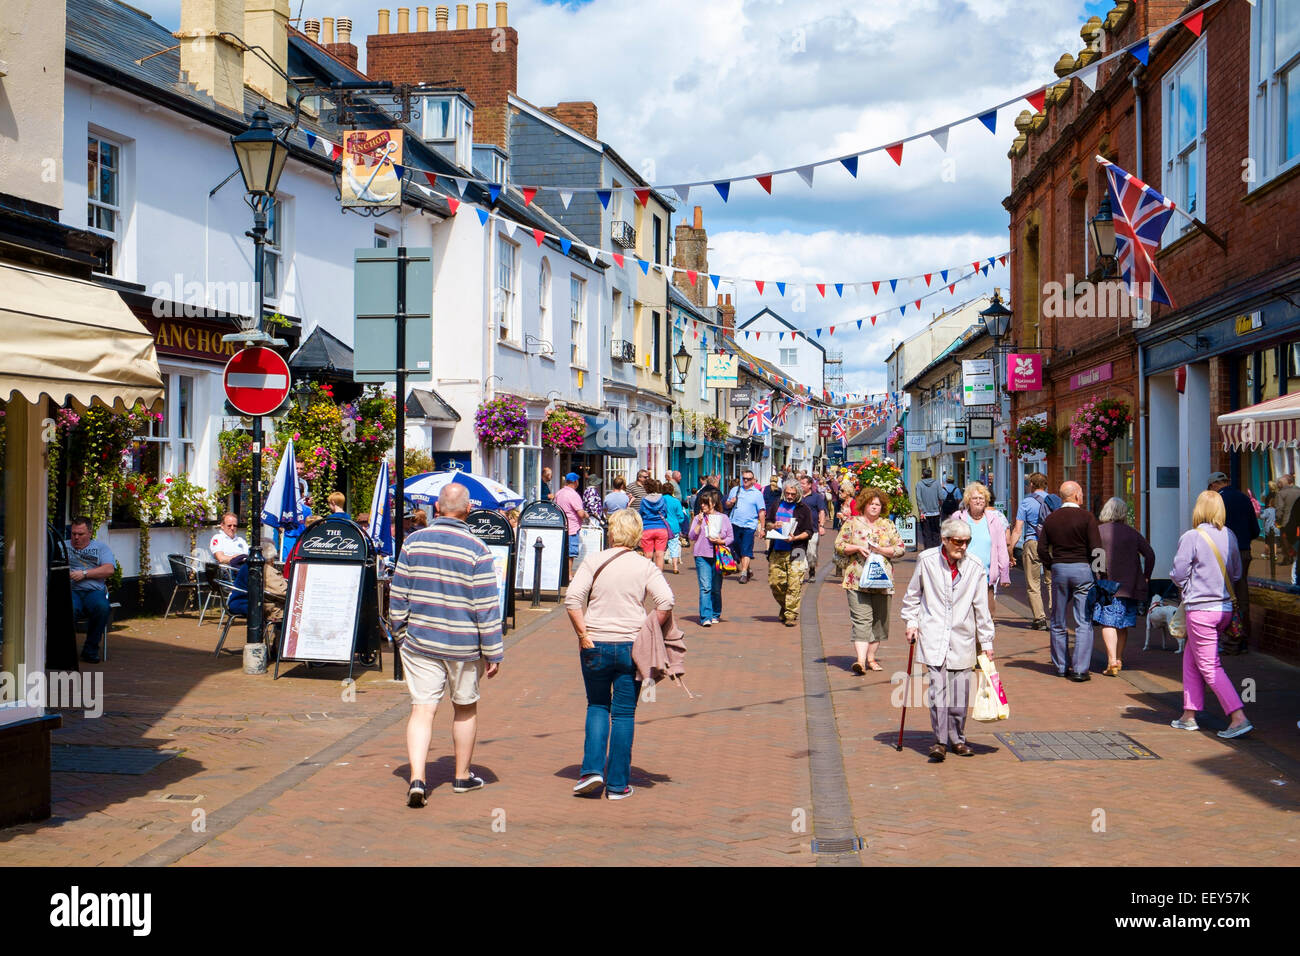 Sidmouth, East Devon, England, high street UK - shoppers in the High street in the town centre in summer at this - Stock Image